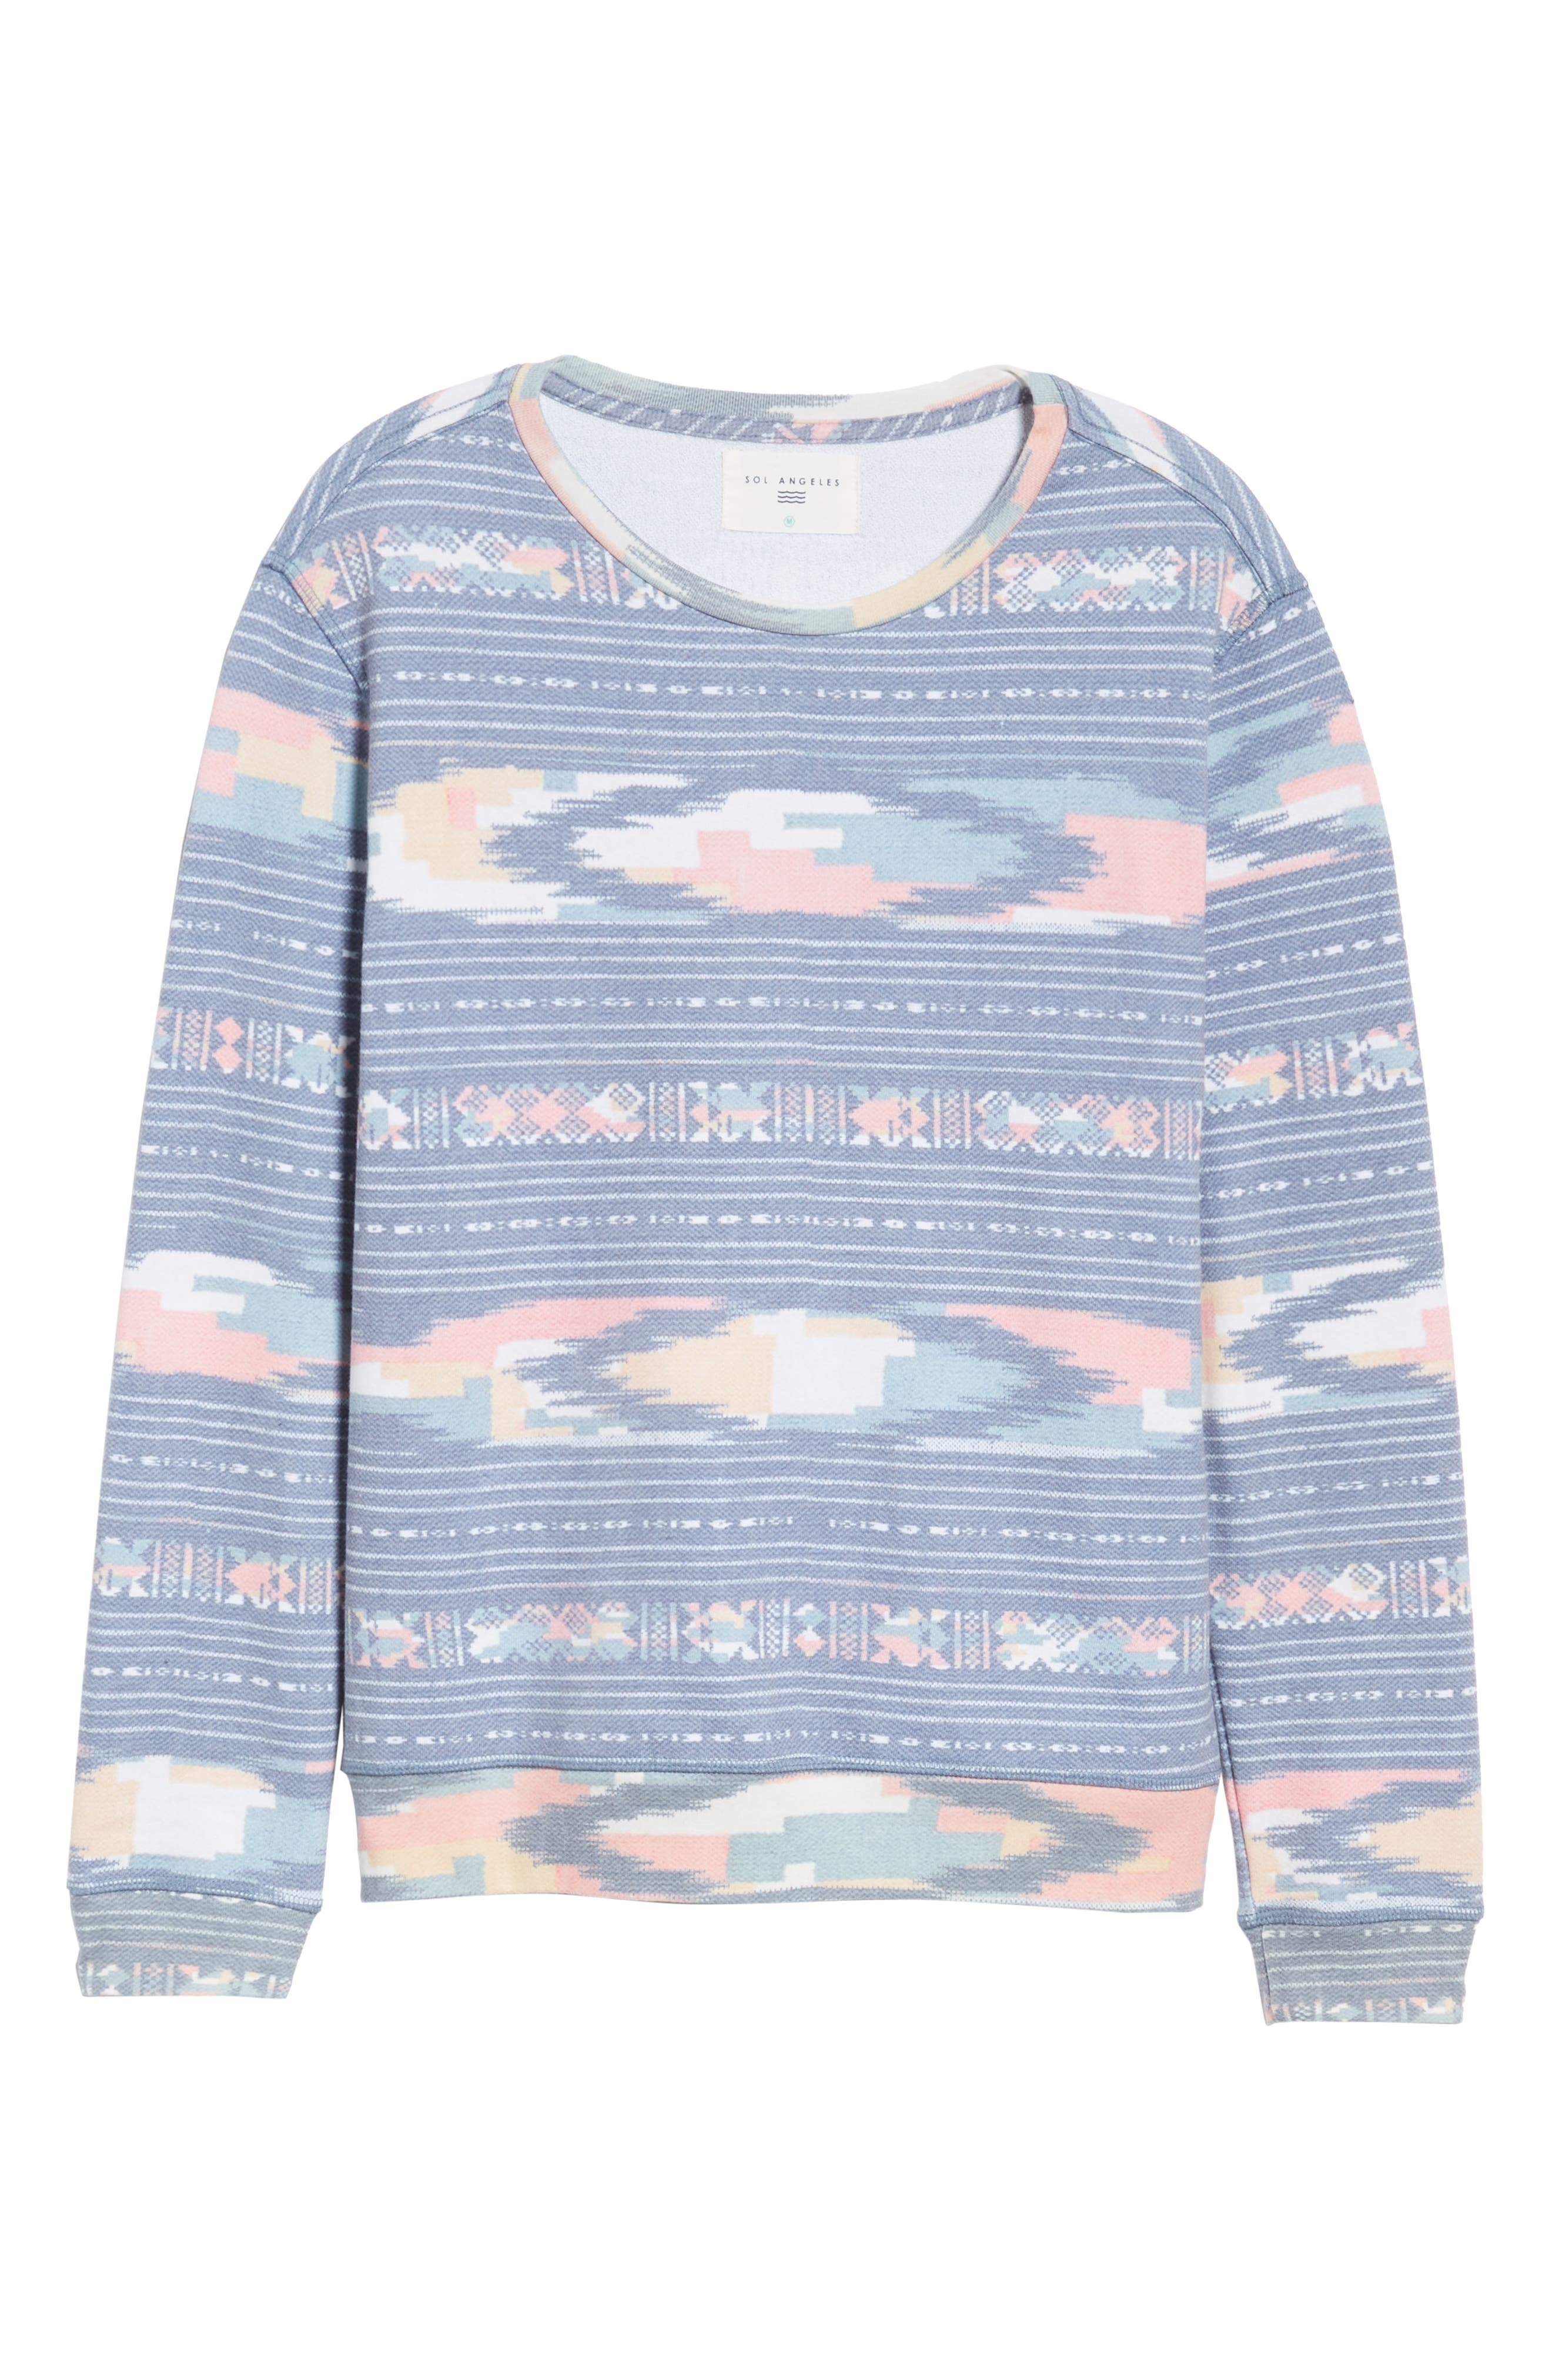 Sunset Ikat Crewneck Pullover,                             Alternate thumbnail 6, color,                             400